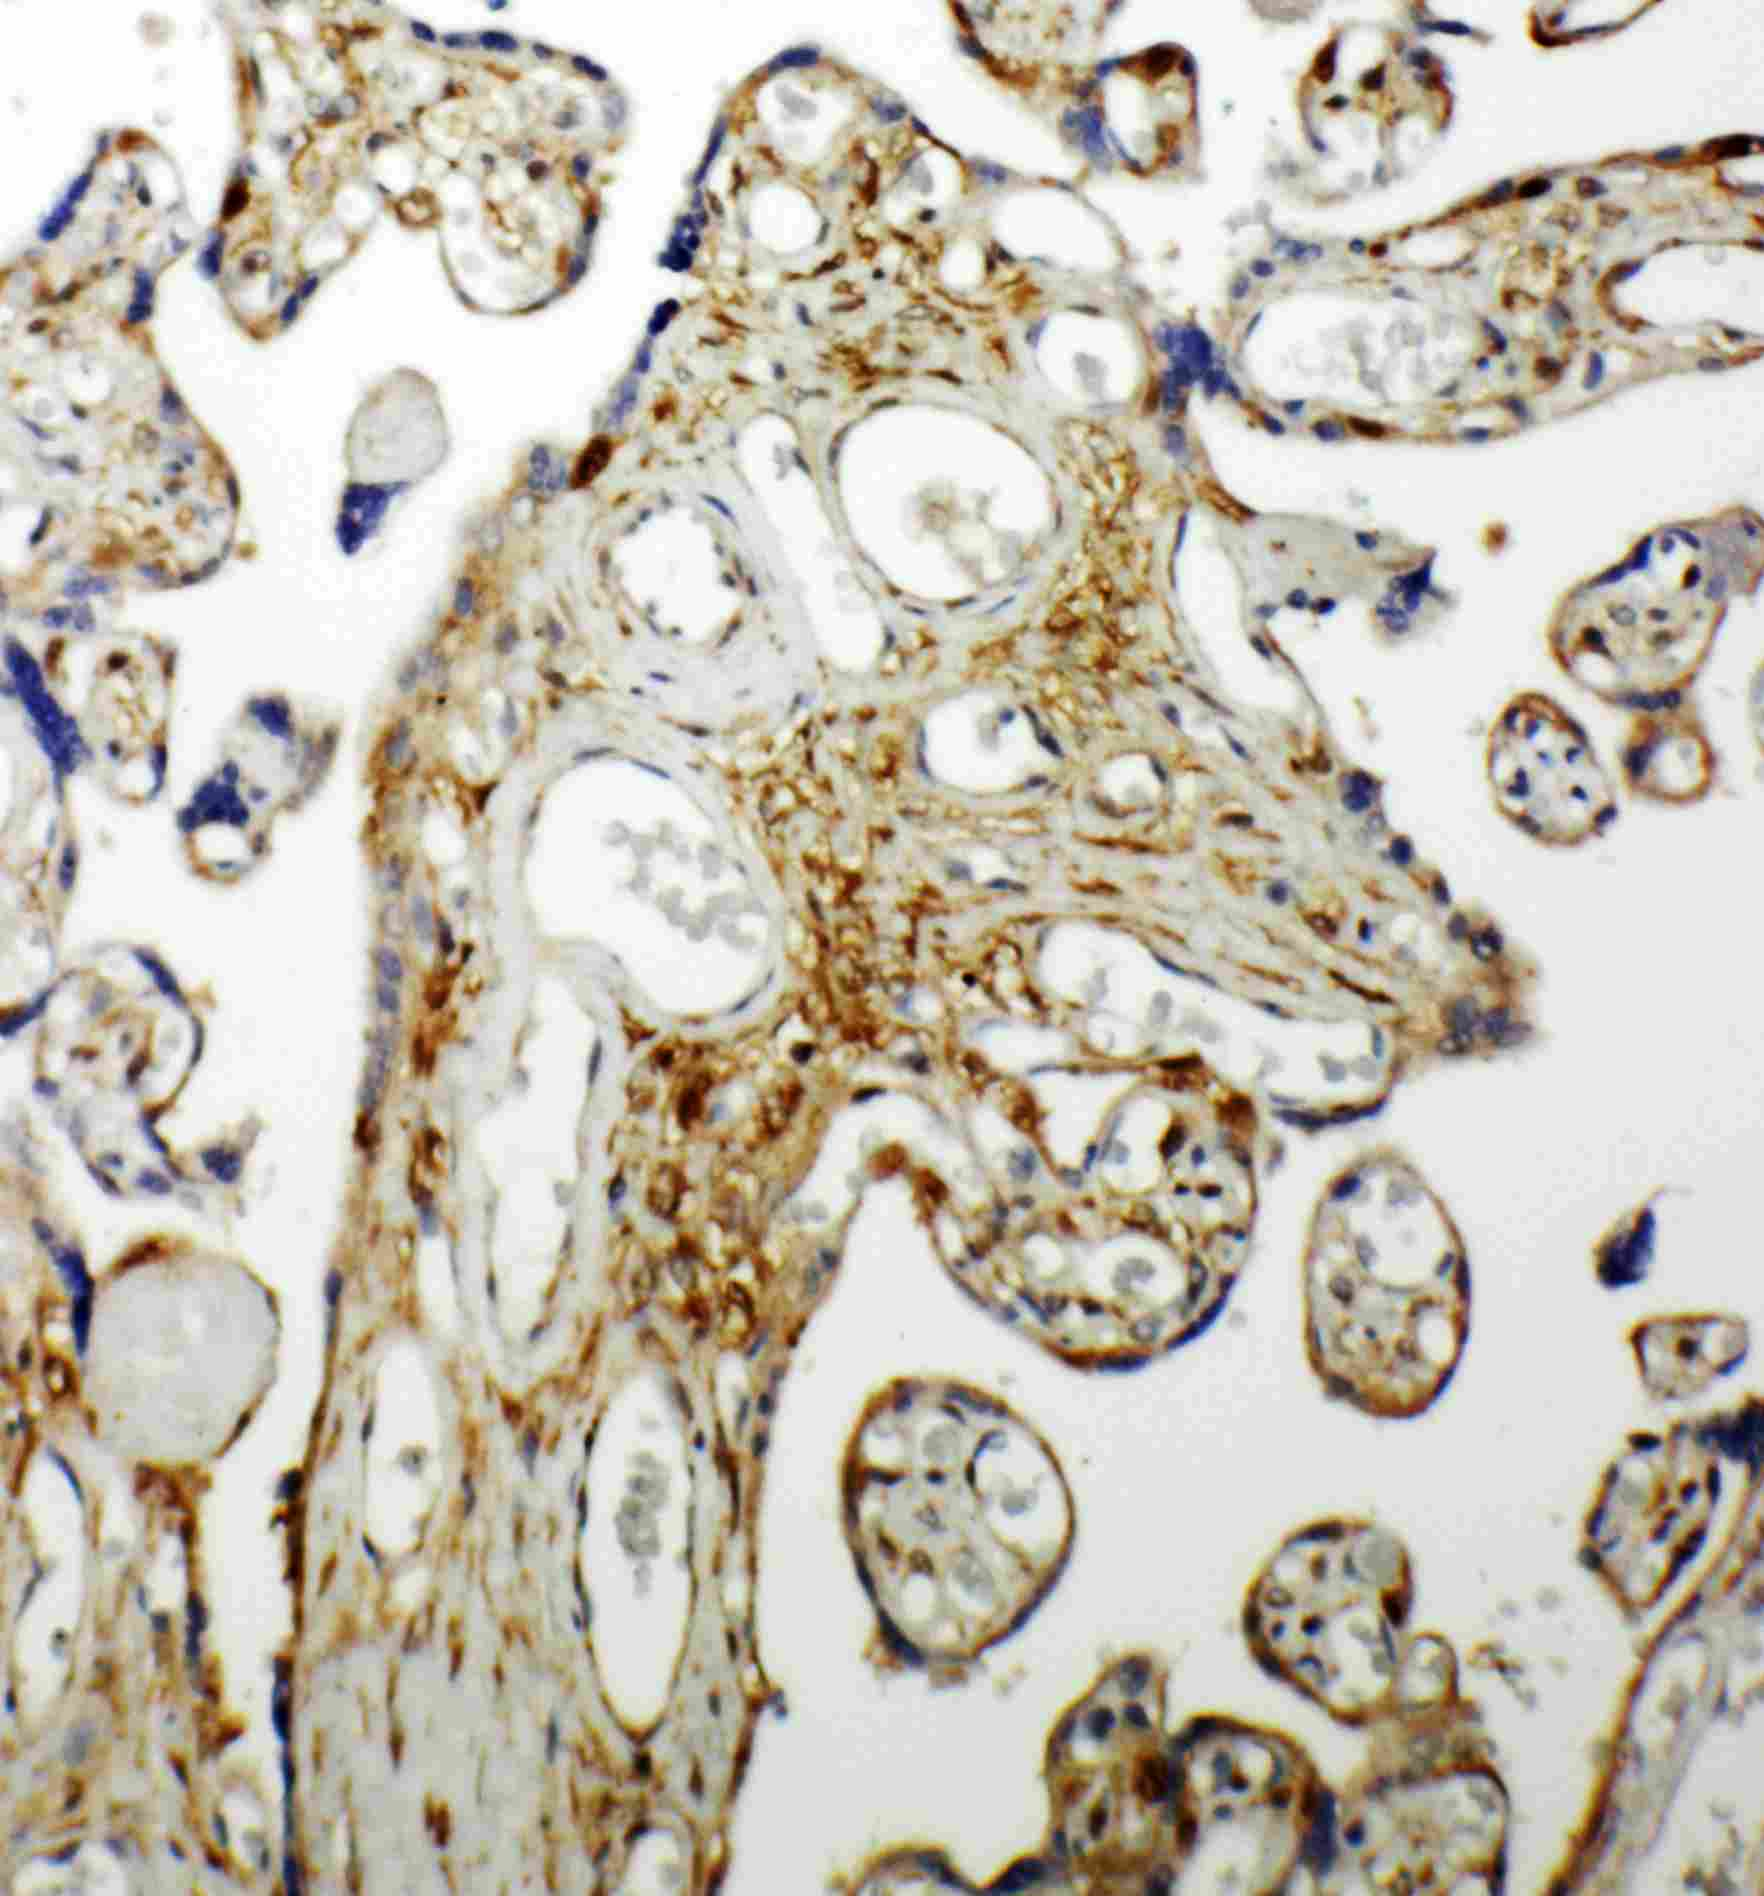 Immunohistochemistry (Formalin/PFA-fixed paraffin-embedded sections) - Anti-SPHK1 antibody (ab260073)